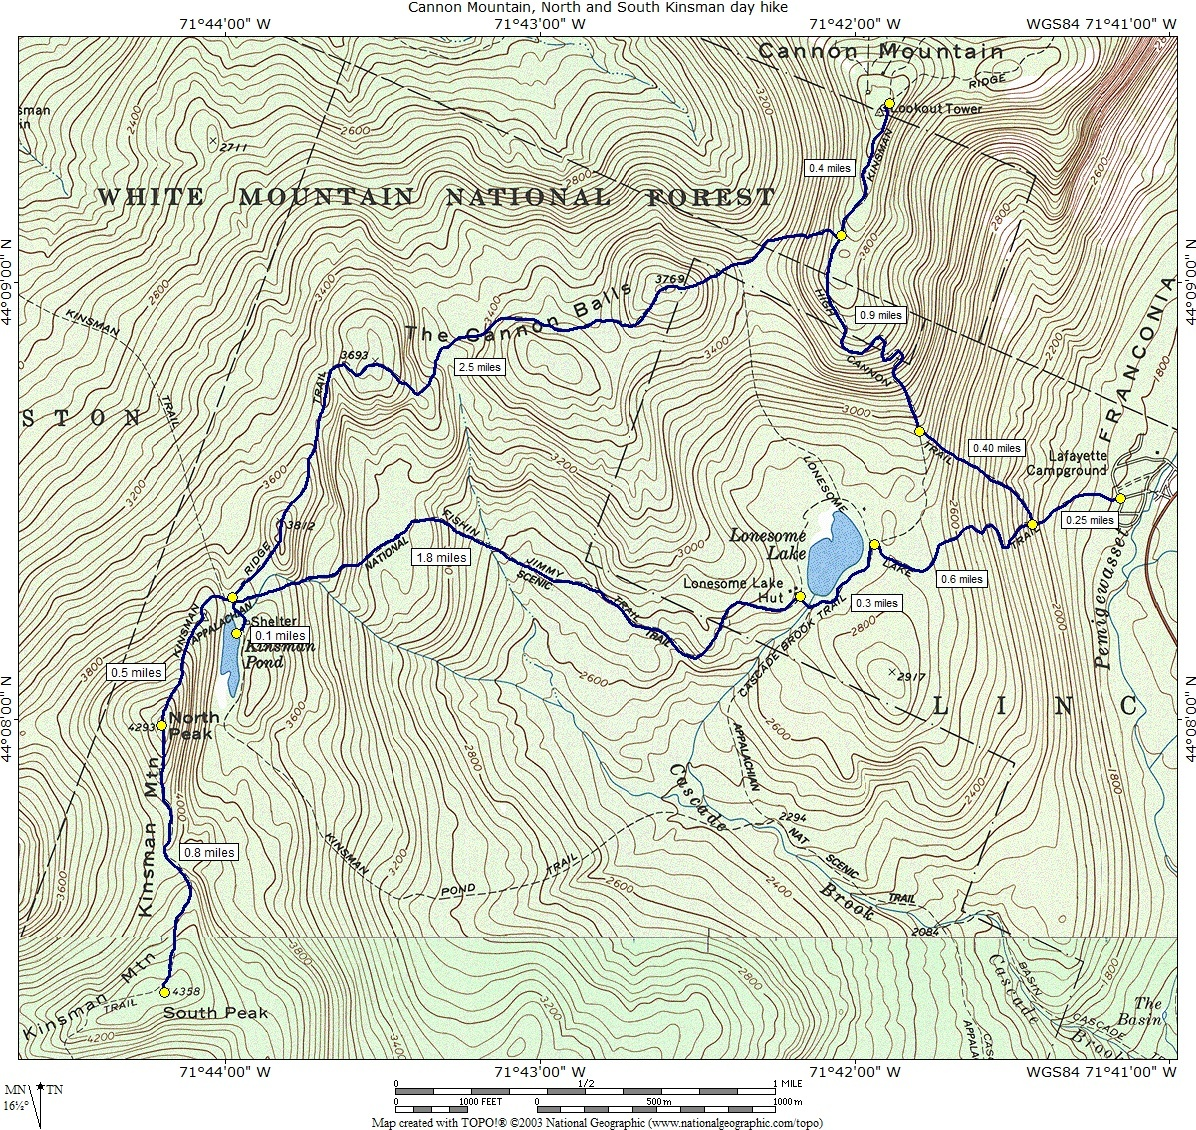 Cannon Mountain, North & South Kinsman day hike on burke mountain trail map, kennesaw mountain battlefield trail map, gunstock trail map, mt. hood meadows trail map, mount wachusett hiking trail map, mt. bachelor trail map, sugar mountain trail map, cannon mtn new hampshire, hunter mountain trail map, mount adams washington trail map, mt. mansfield trail map, mount monadnock hiking trails map, wachusett mountain trail map, black mountain trail map, sno mountain trail map, cannon ski trail map, chugach state park trail map, jay peak trail map, mcintyre trail map, kennesaw mountain park trail map,